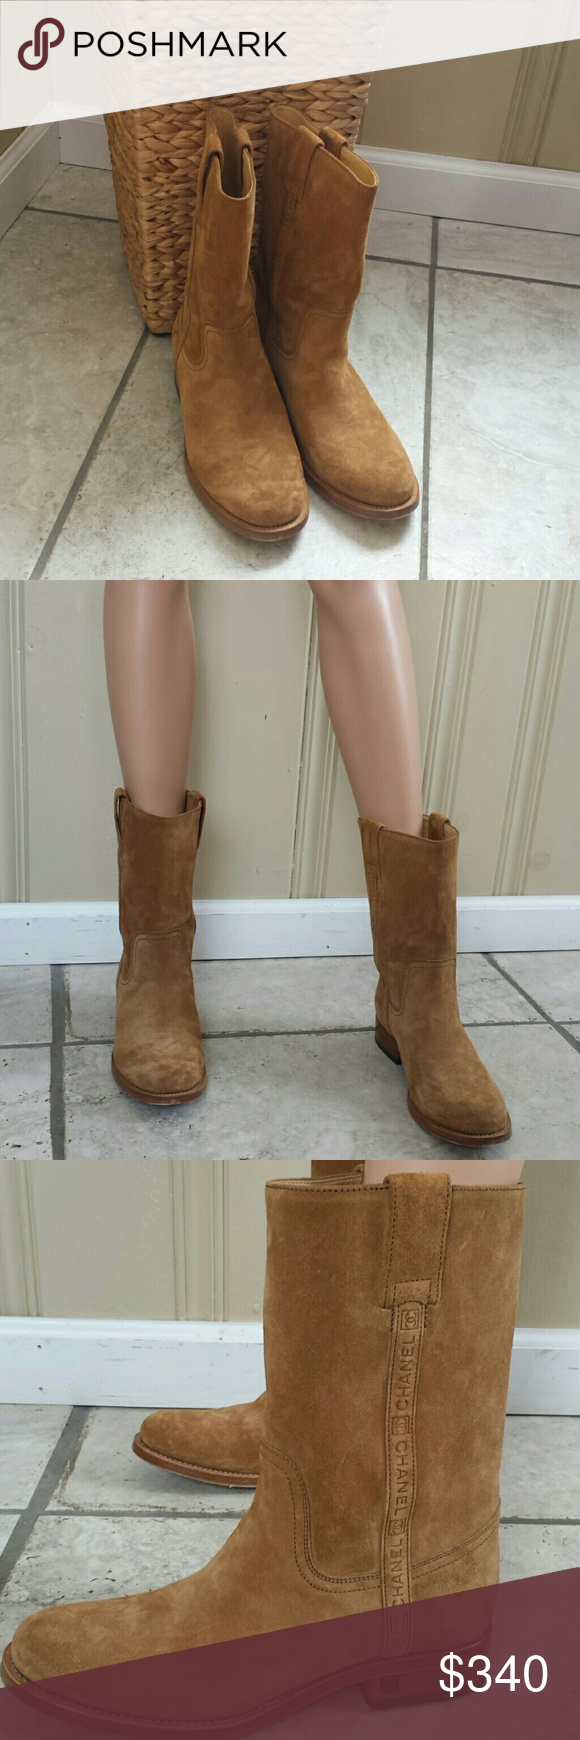 26f303f150d Chanel boots Suede light brown (camel)chanel boots ..logo mid calf ...